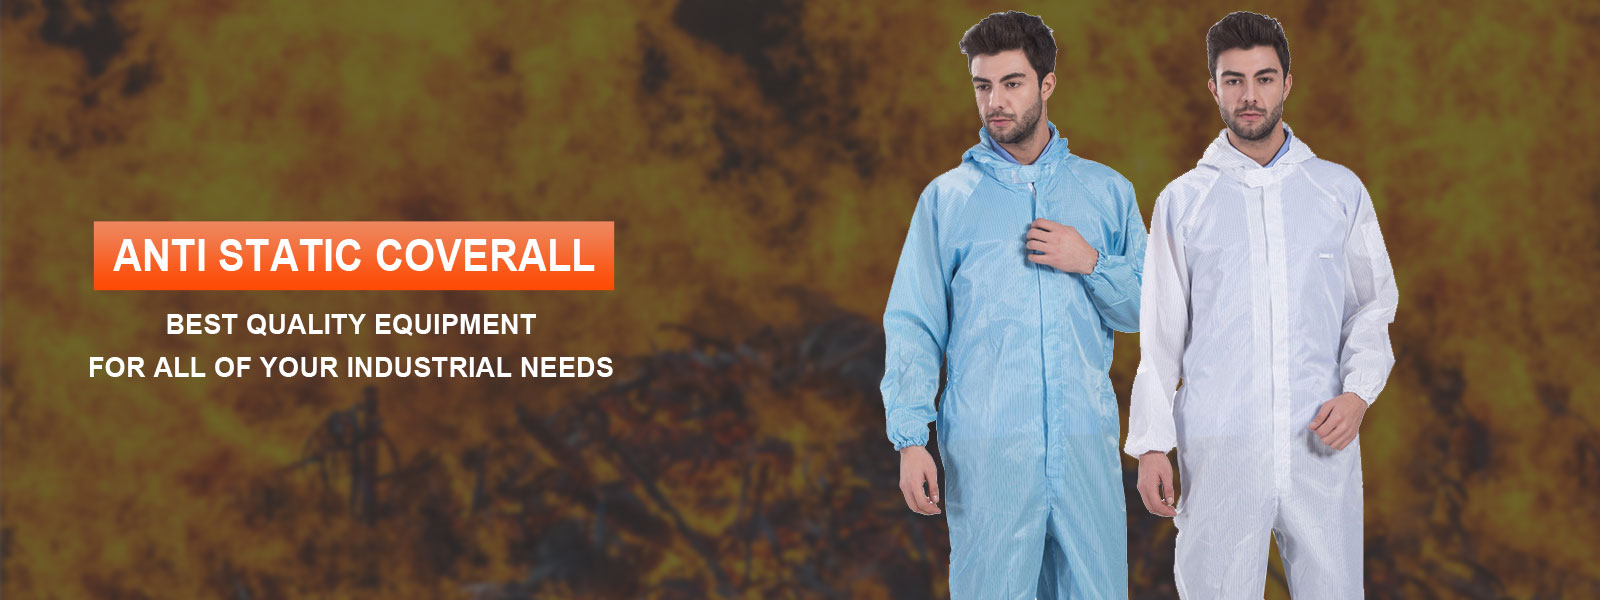 Anti Static Coverall Manufacturers in Slovakia